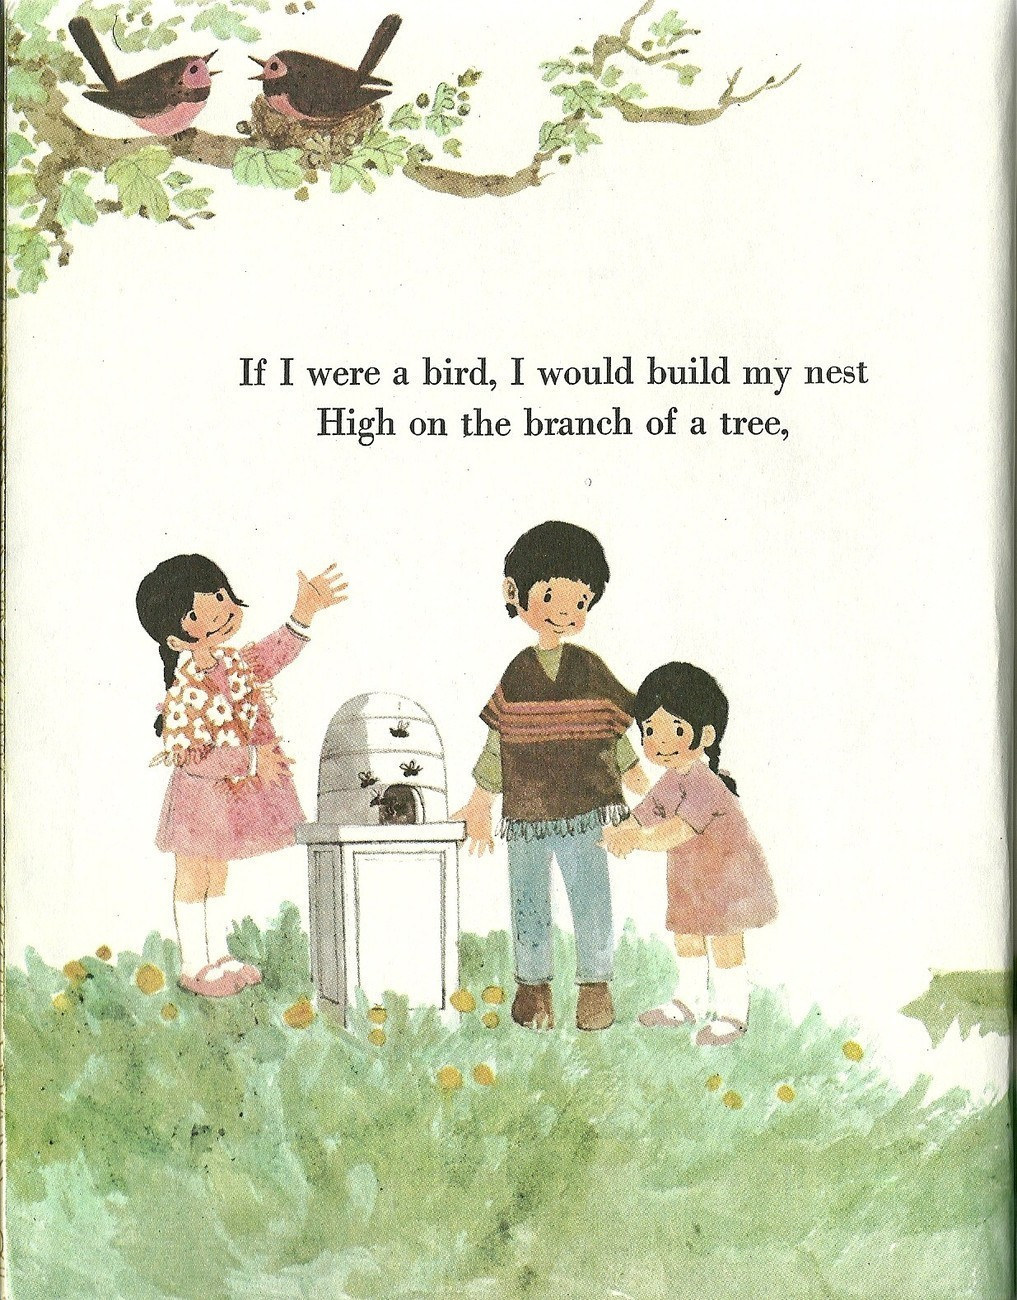 My Home by Renee Bartkowski 1977 Little Golden Book Hardcover 5th Edition